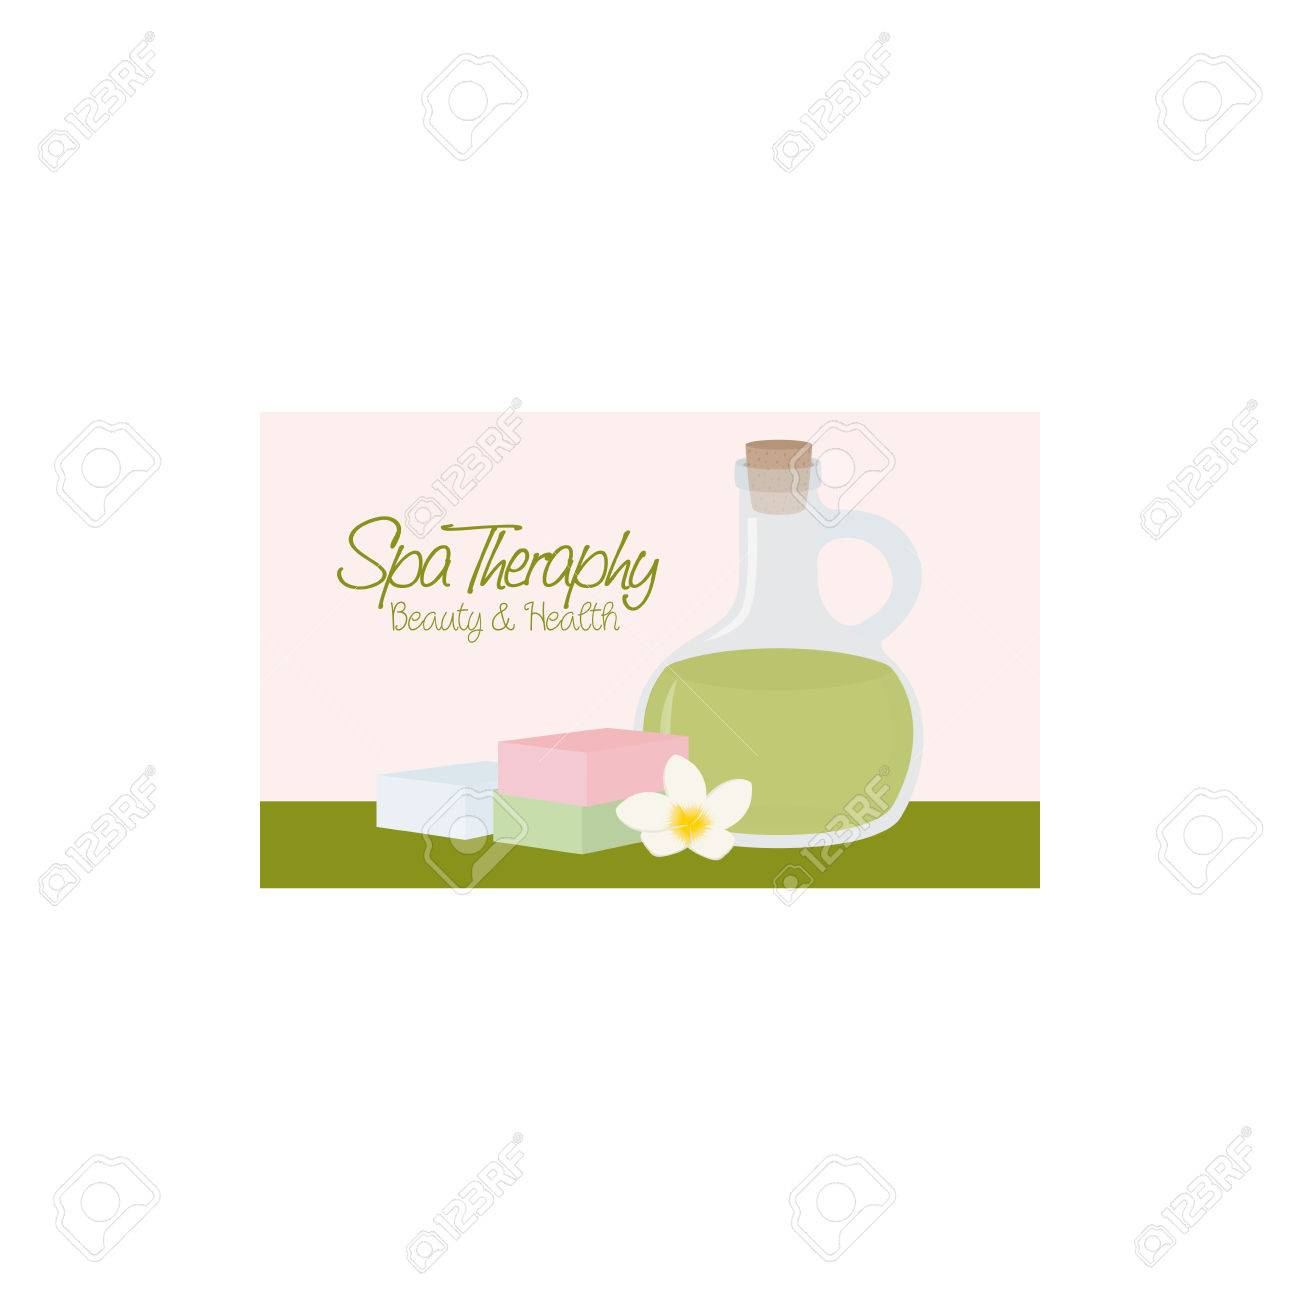 Isolated Spa Business Card With A Flask Of Lotion, Text, A Flower ...